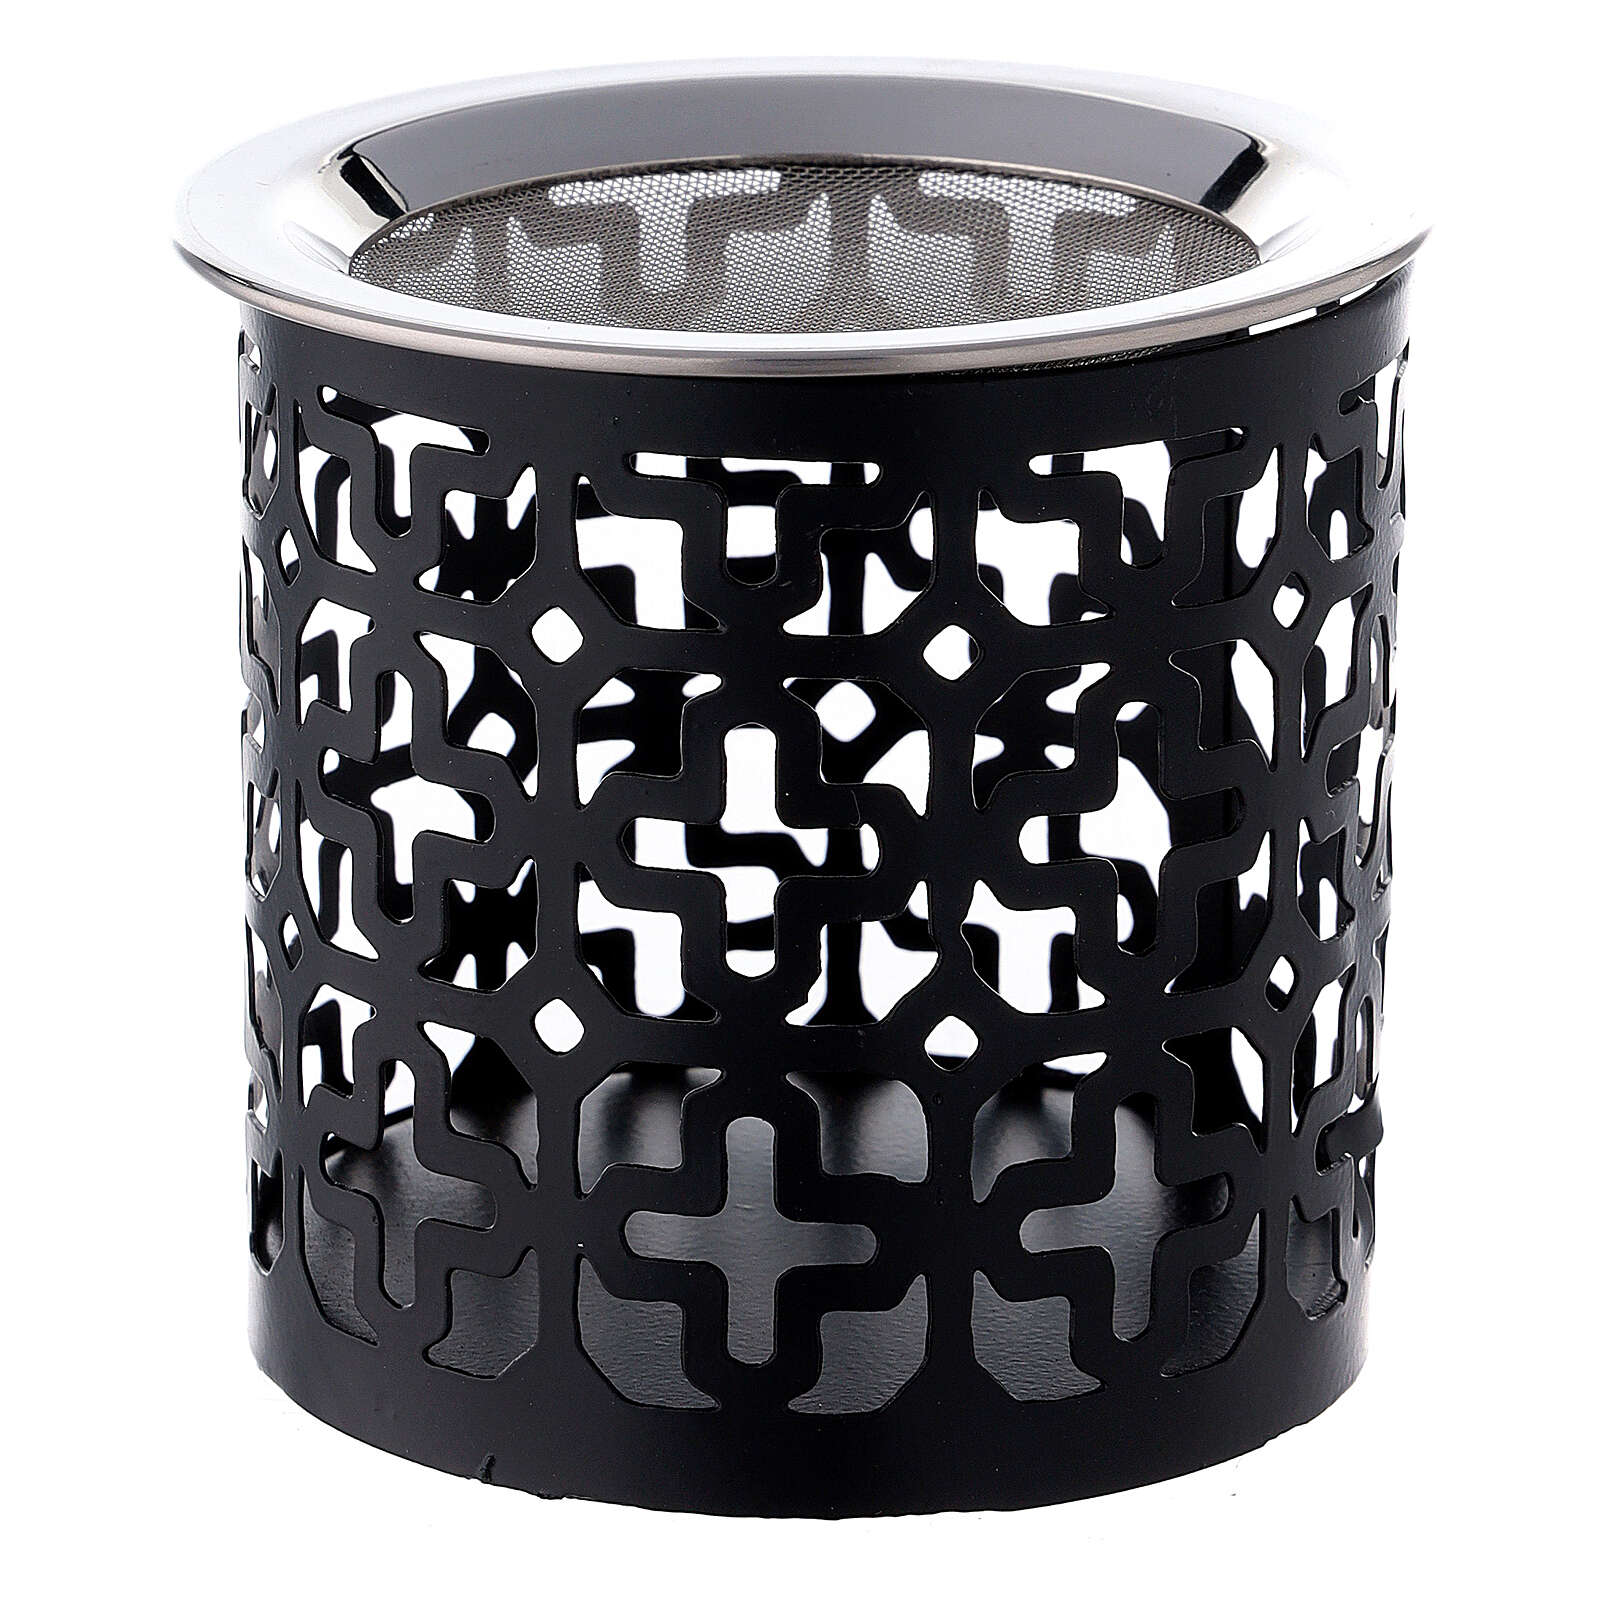 Black metal incense burner with cut-out crosses 3 in 3